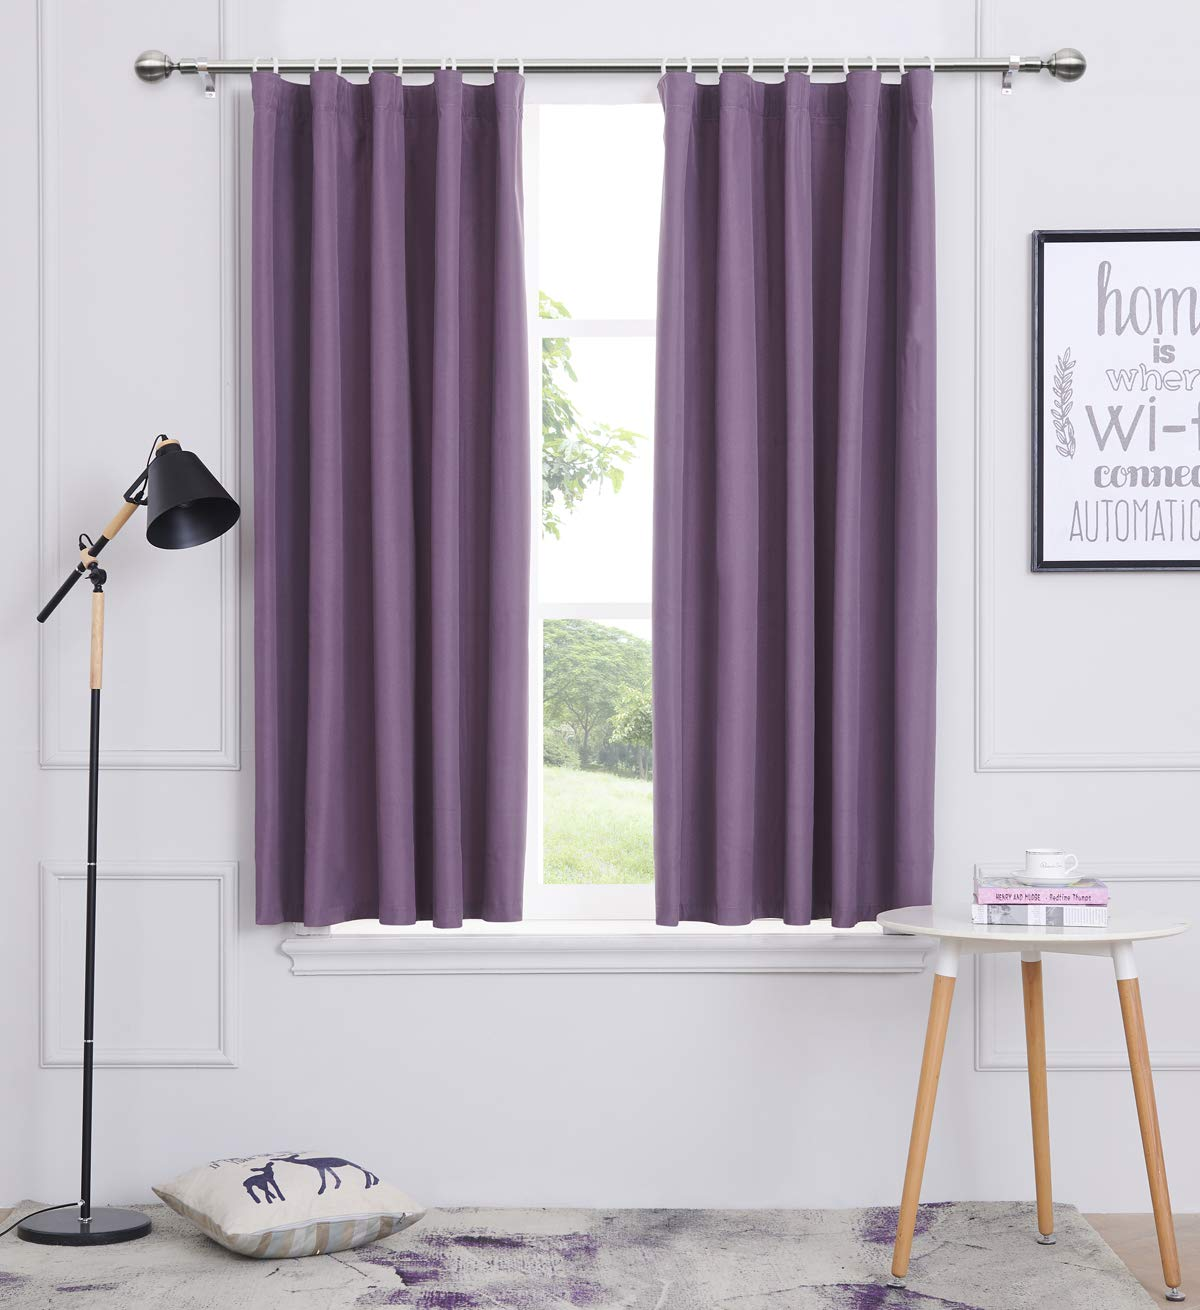 Woven Textured Light Reducing Curtains For Kids Bedroom Thermal Pencil Pleat Curtains 2 panels Berry, 46x54